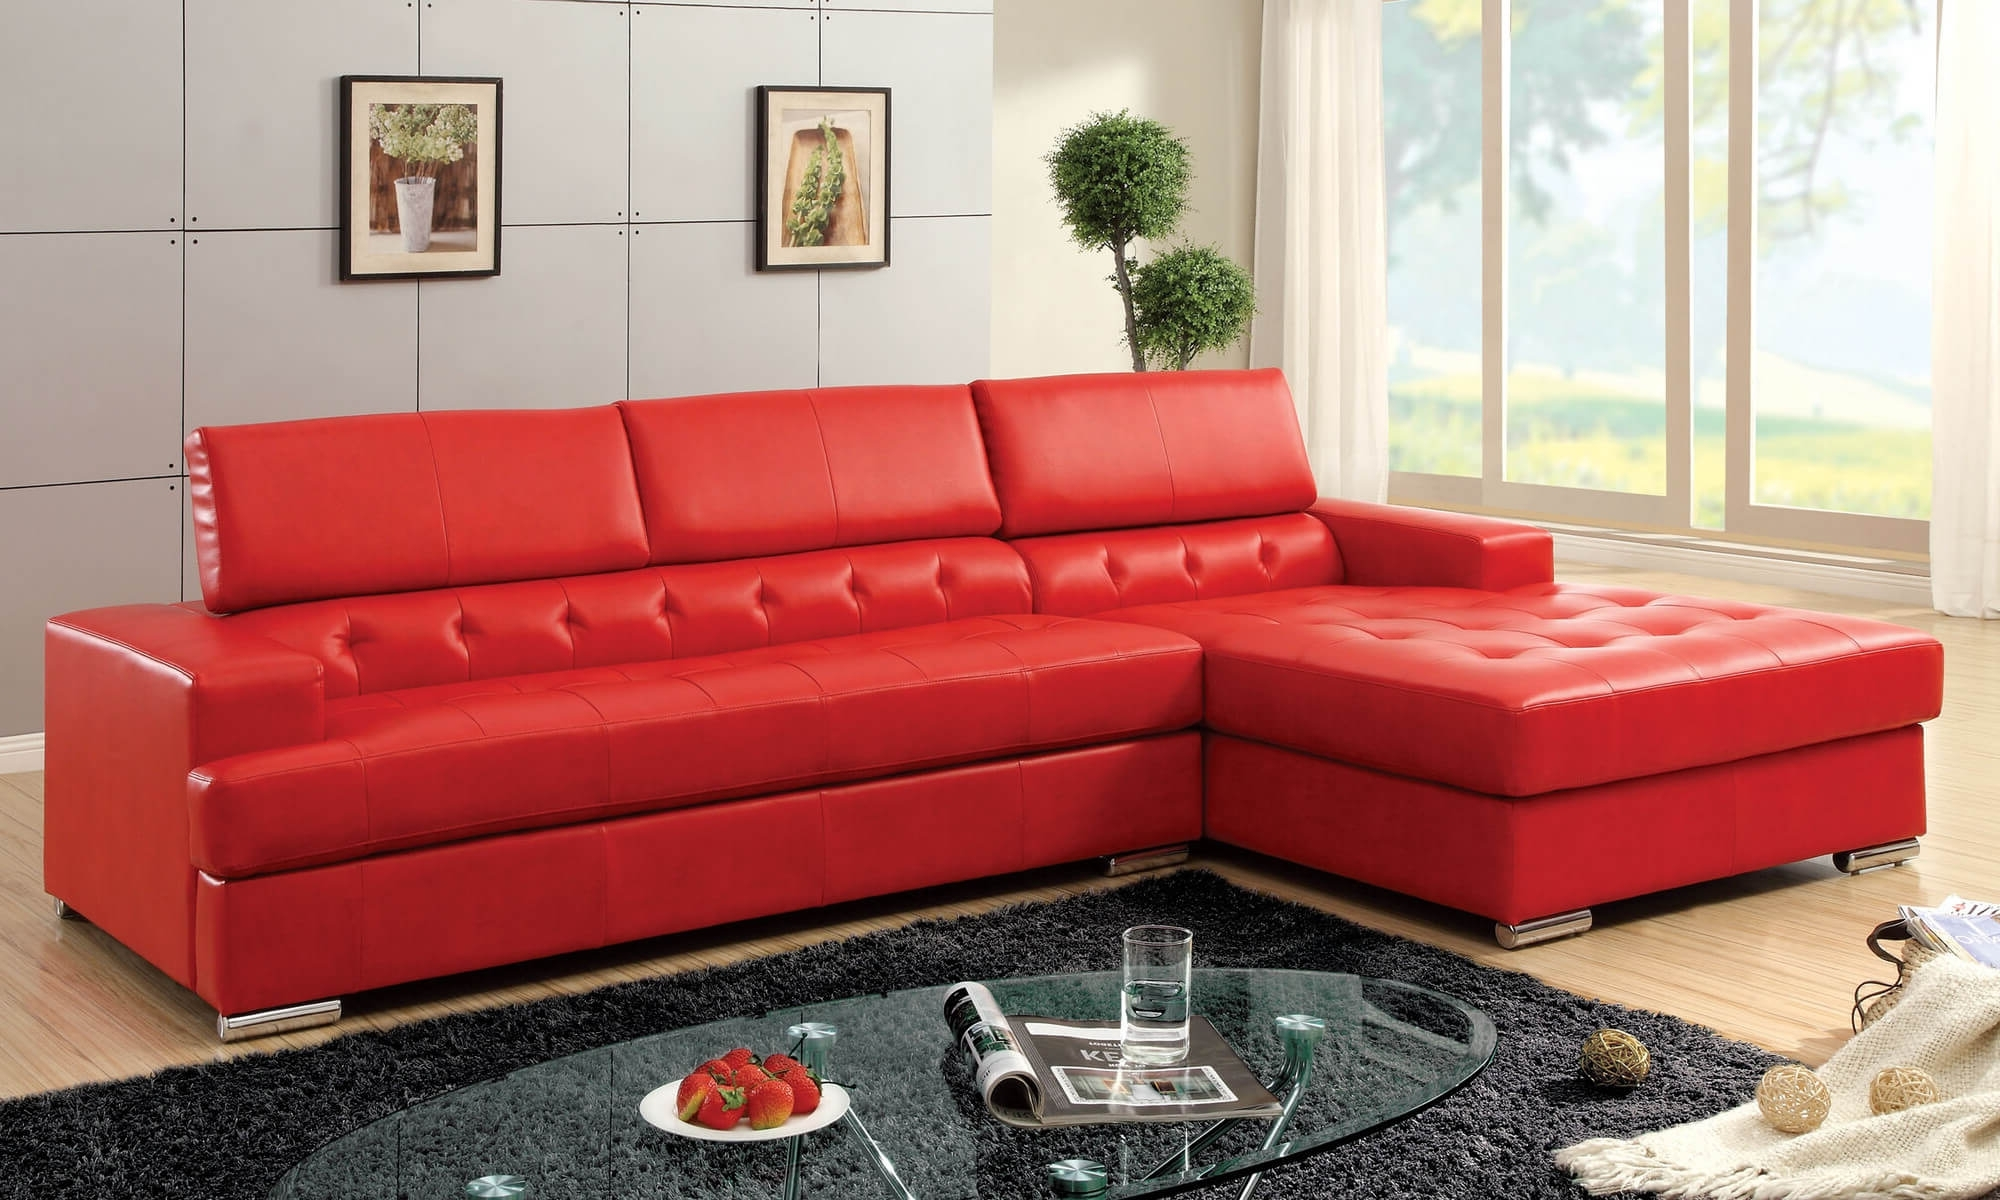 Newest Sectional Sofa Design: Wonderful Red Sectional Sofa With Chaise Within Red Leather Sectionals With Ottoman (View 8 of 15)